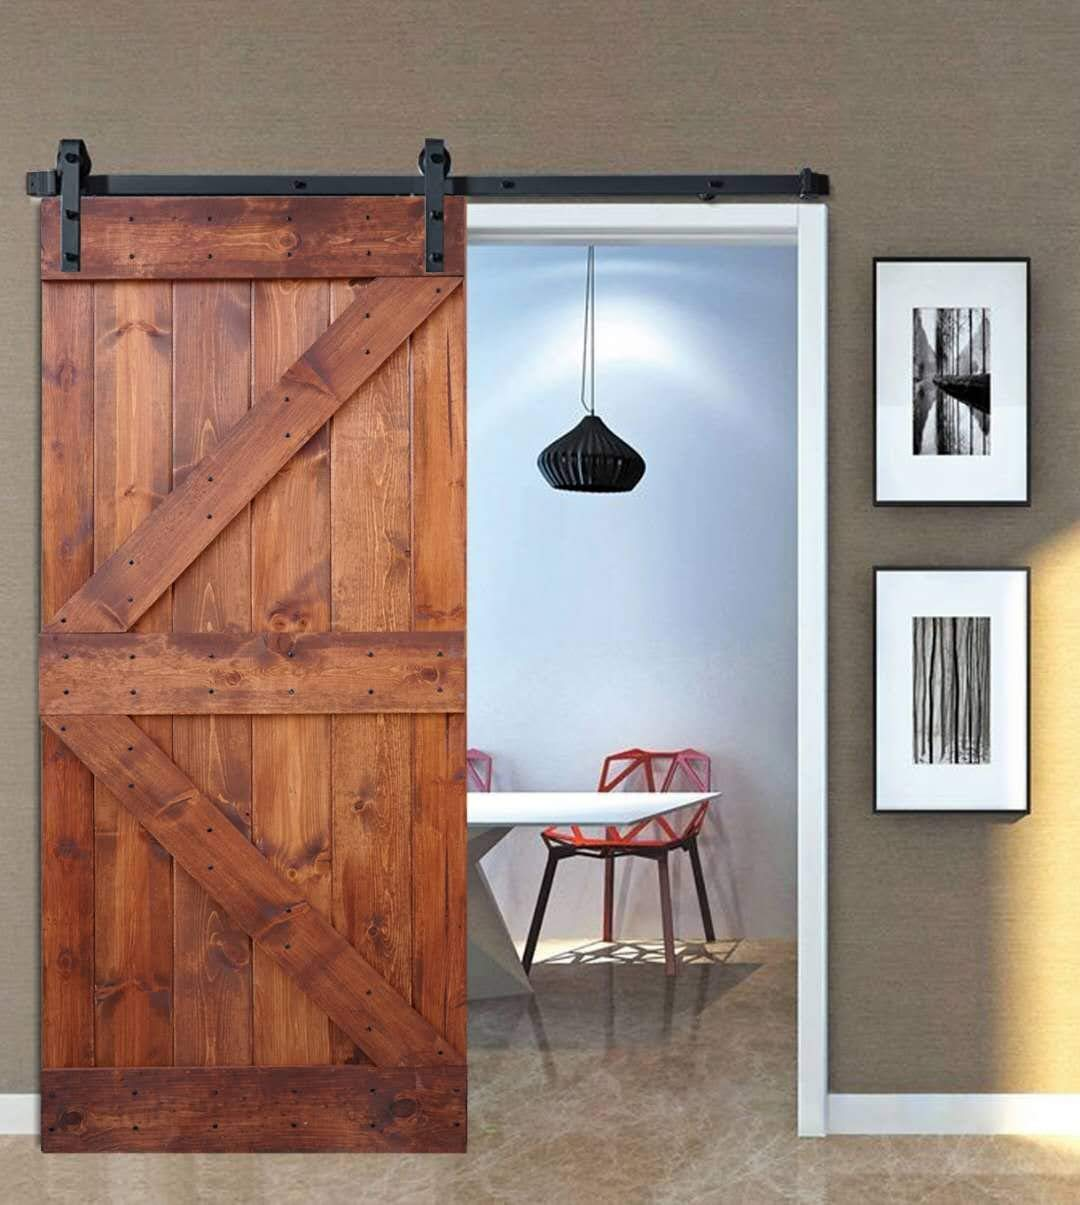 36inX84in K Series DIY Solid Interior Barn Knotty Wood Painted Door WELLHOME 6.6 FT Sliding Hardware Kit black